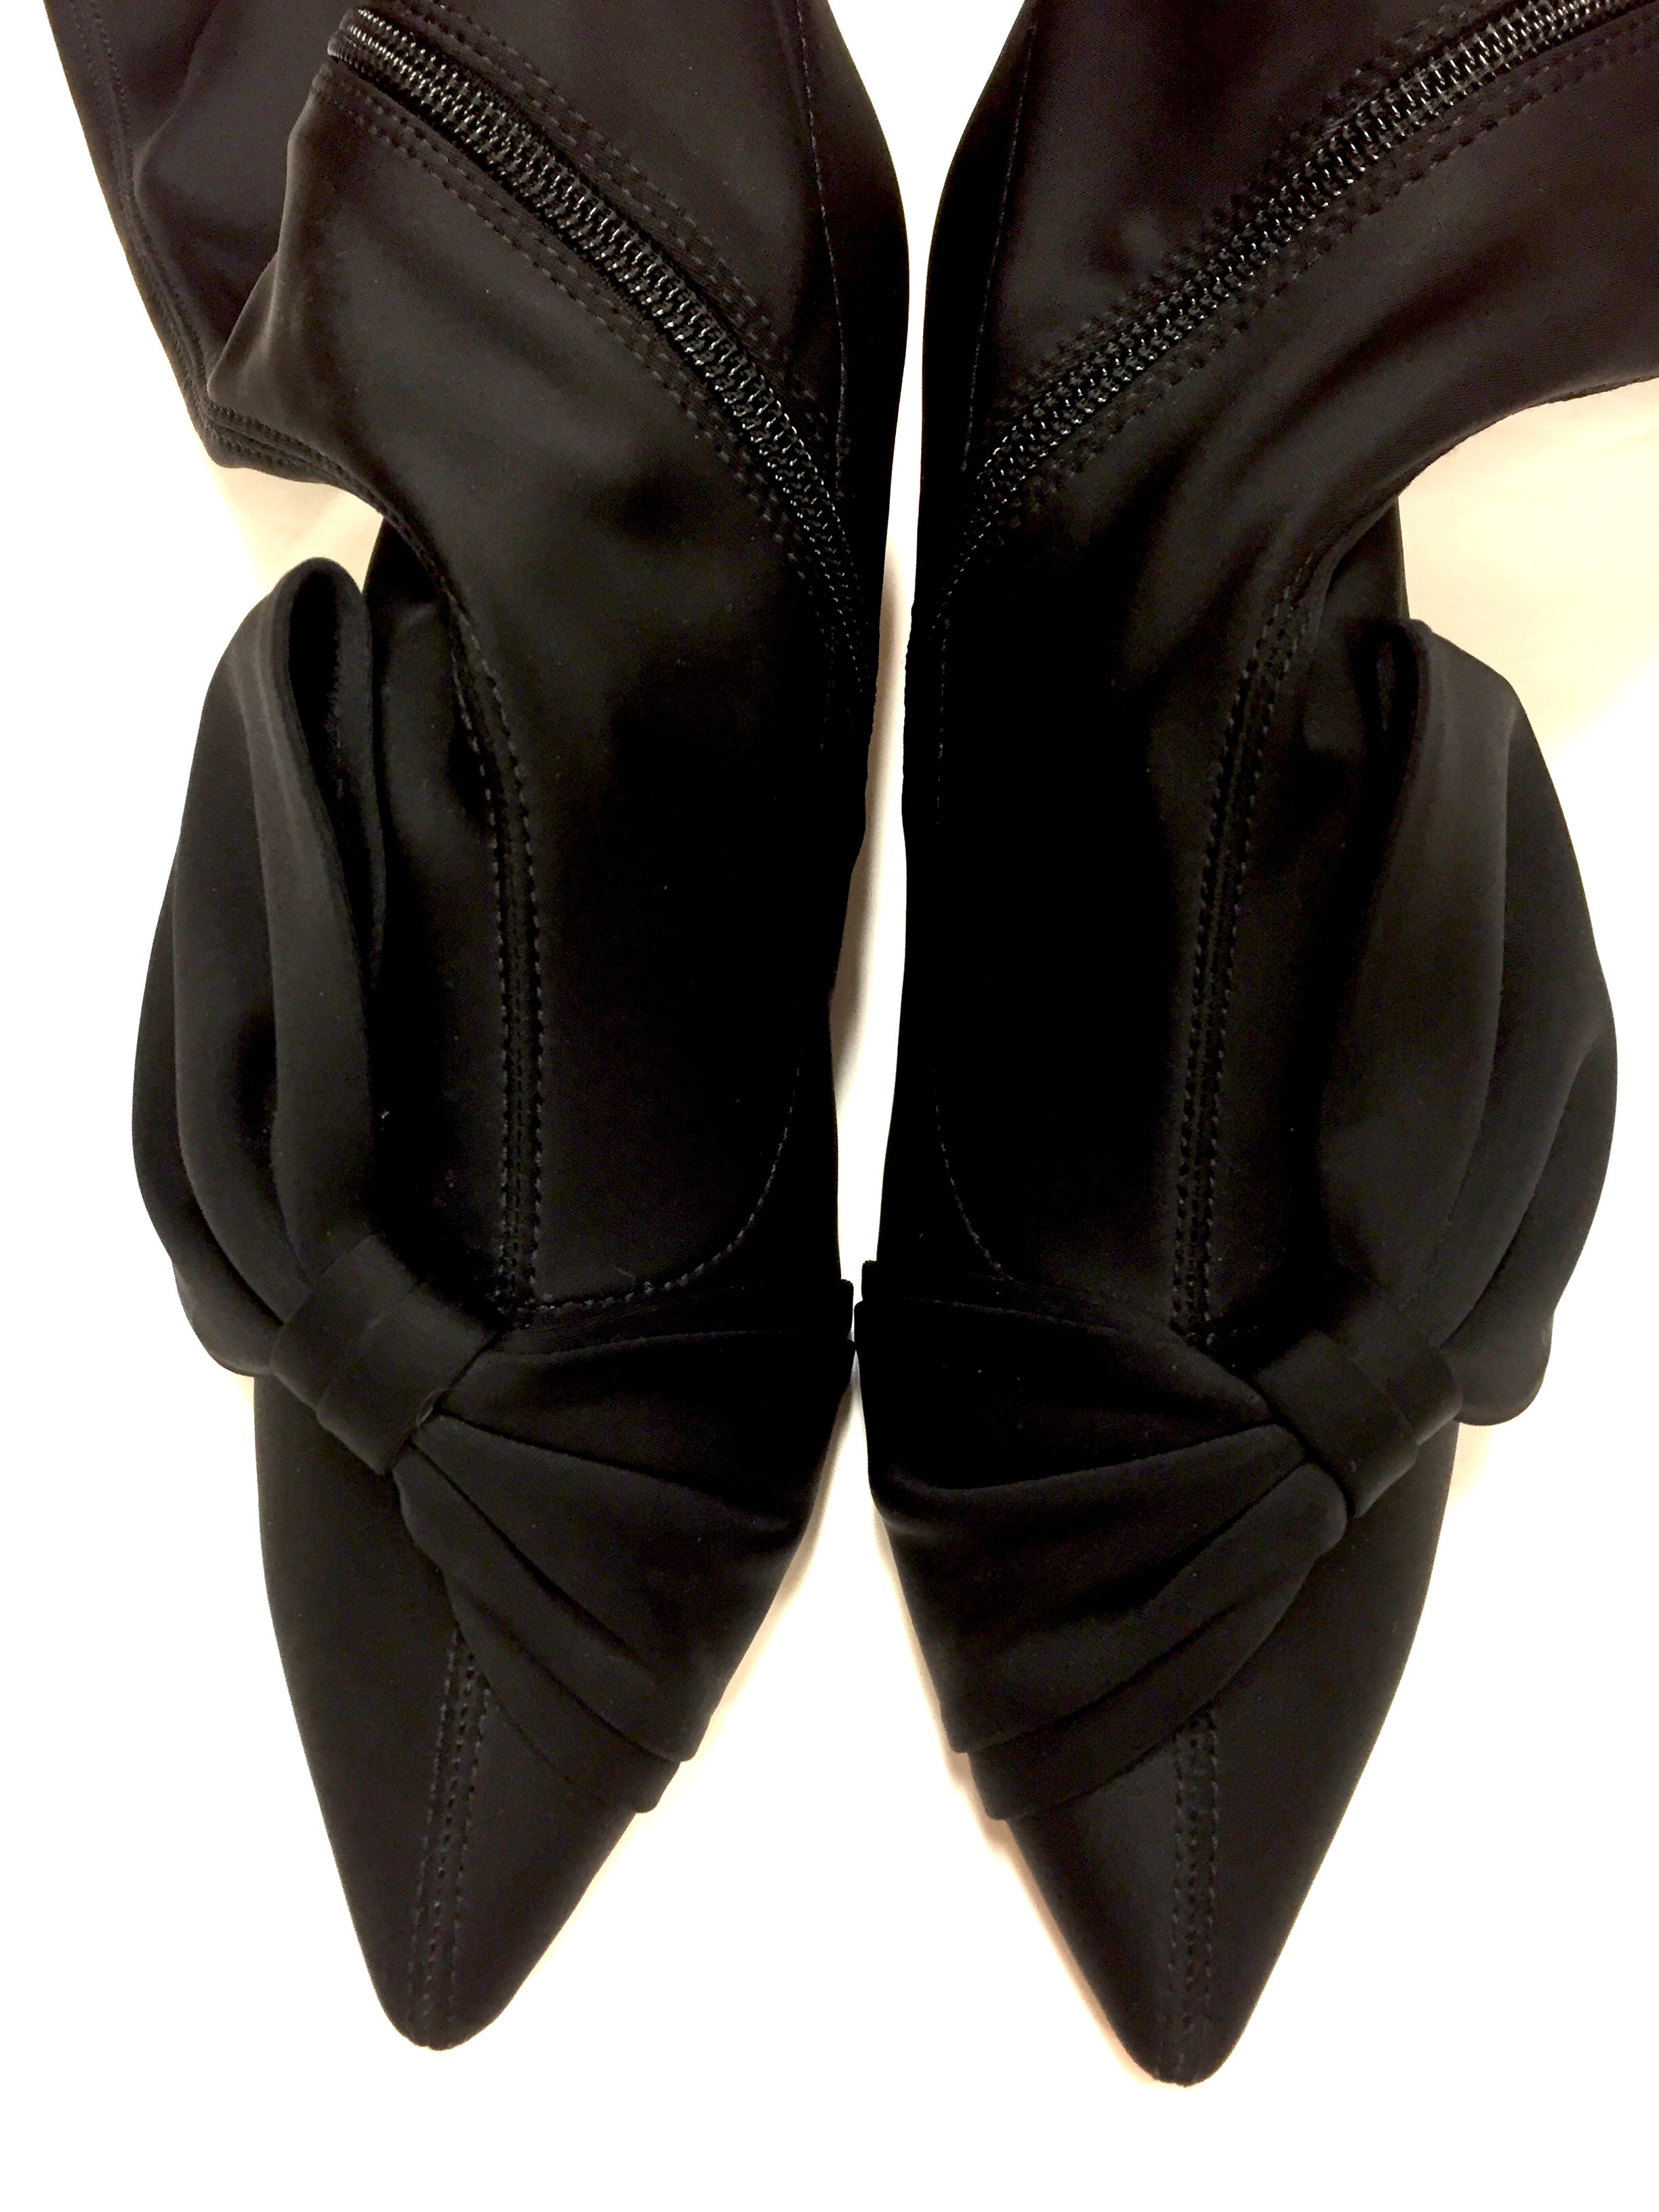 9a3d145e9332 ZARA BASIC COLLECTION Black Microfiber Over-the-Heel Kitten Heel Boots Size   37   7